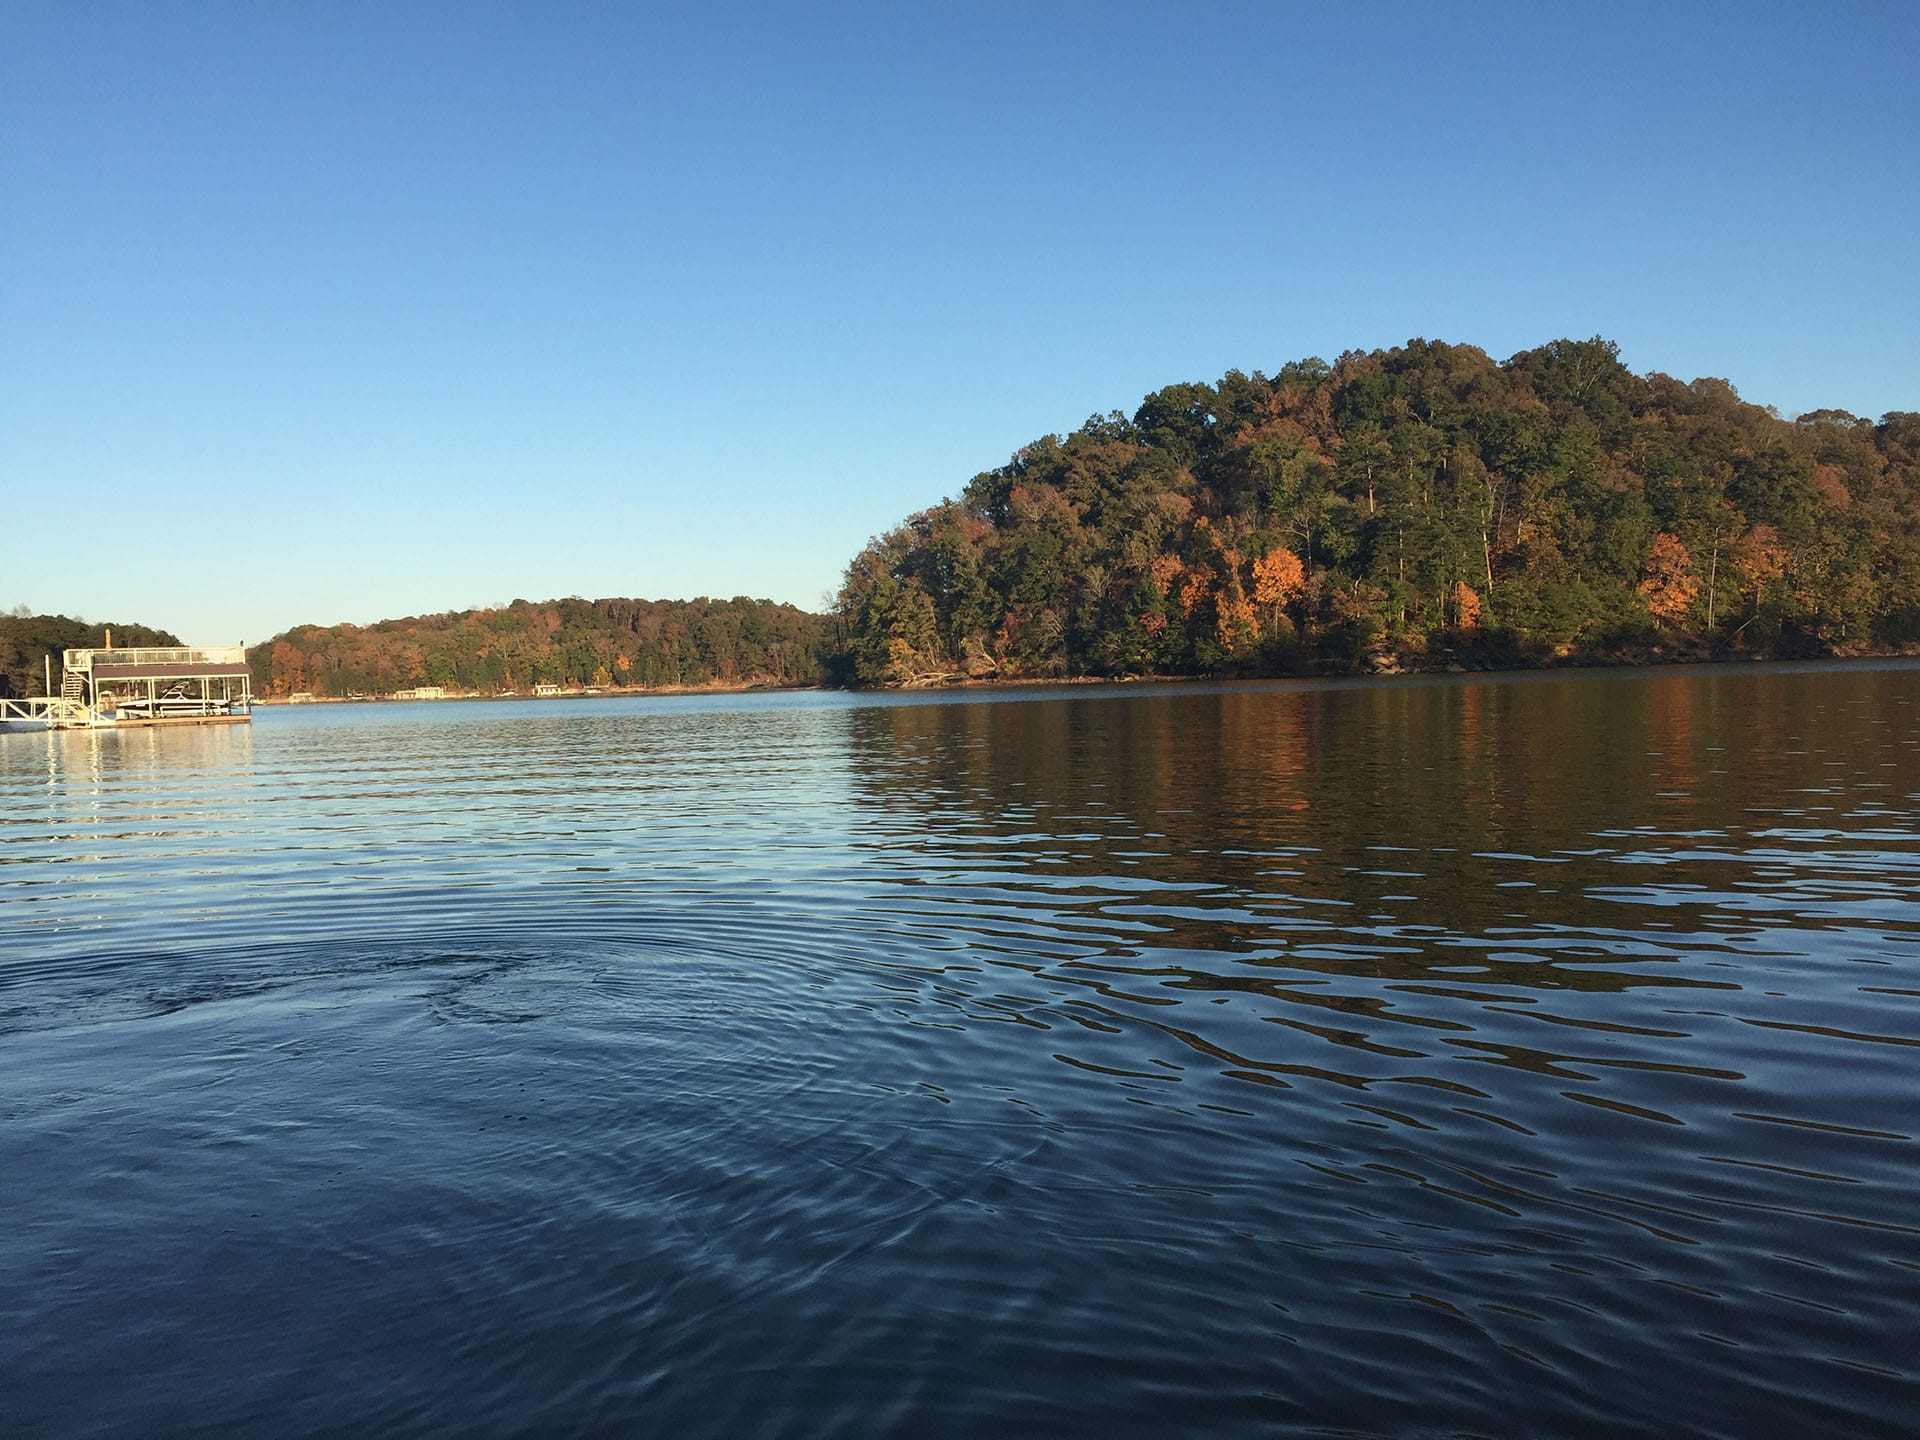 Lake Lanier with blue skies and a homeowner's dock